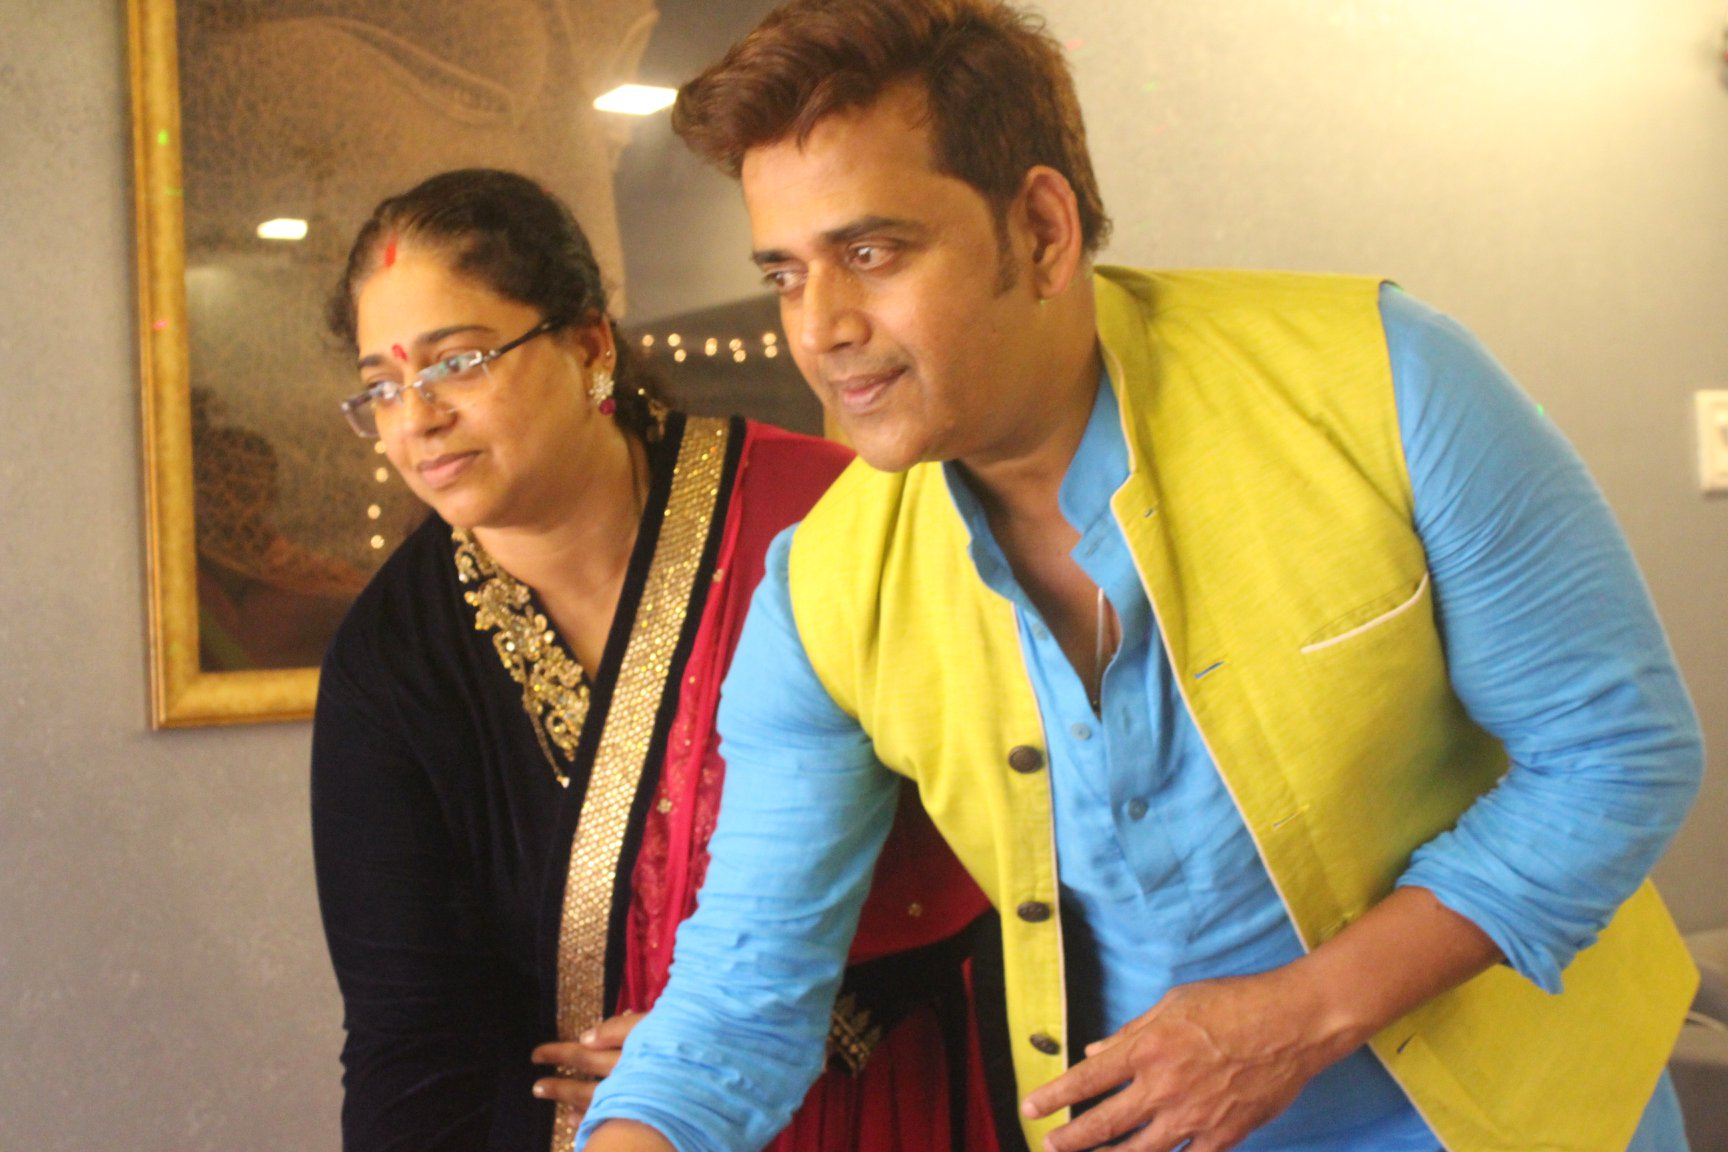 Shubhi Sharma Ravi Kishan, along with many stars of Bhojpuri, Ganpati Bappa